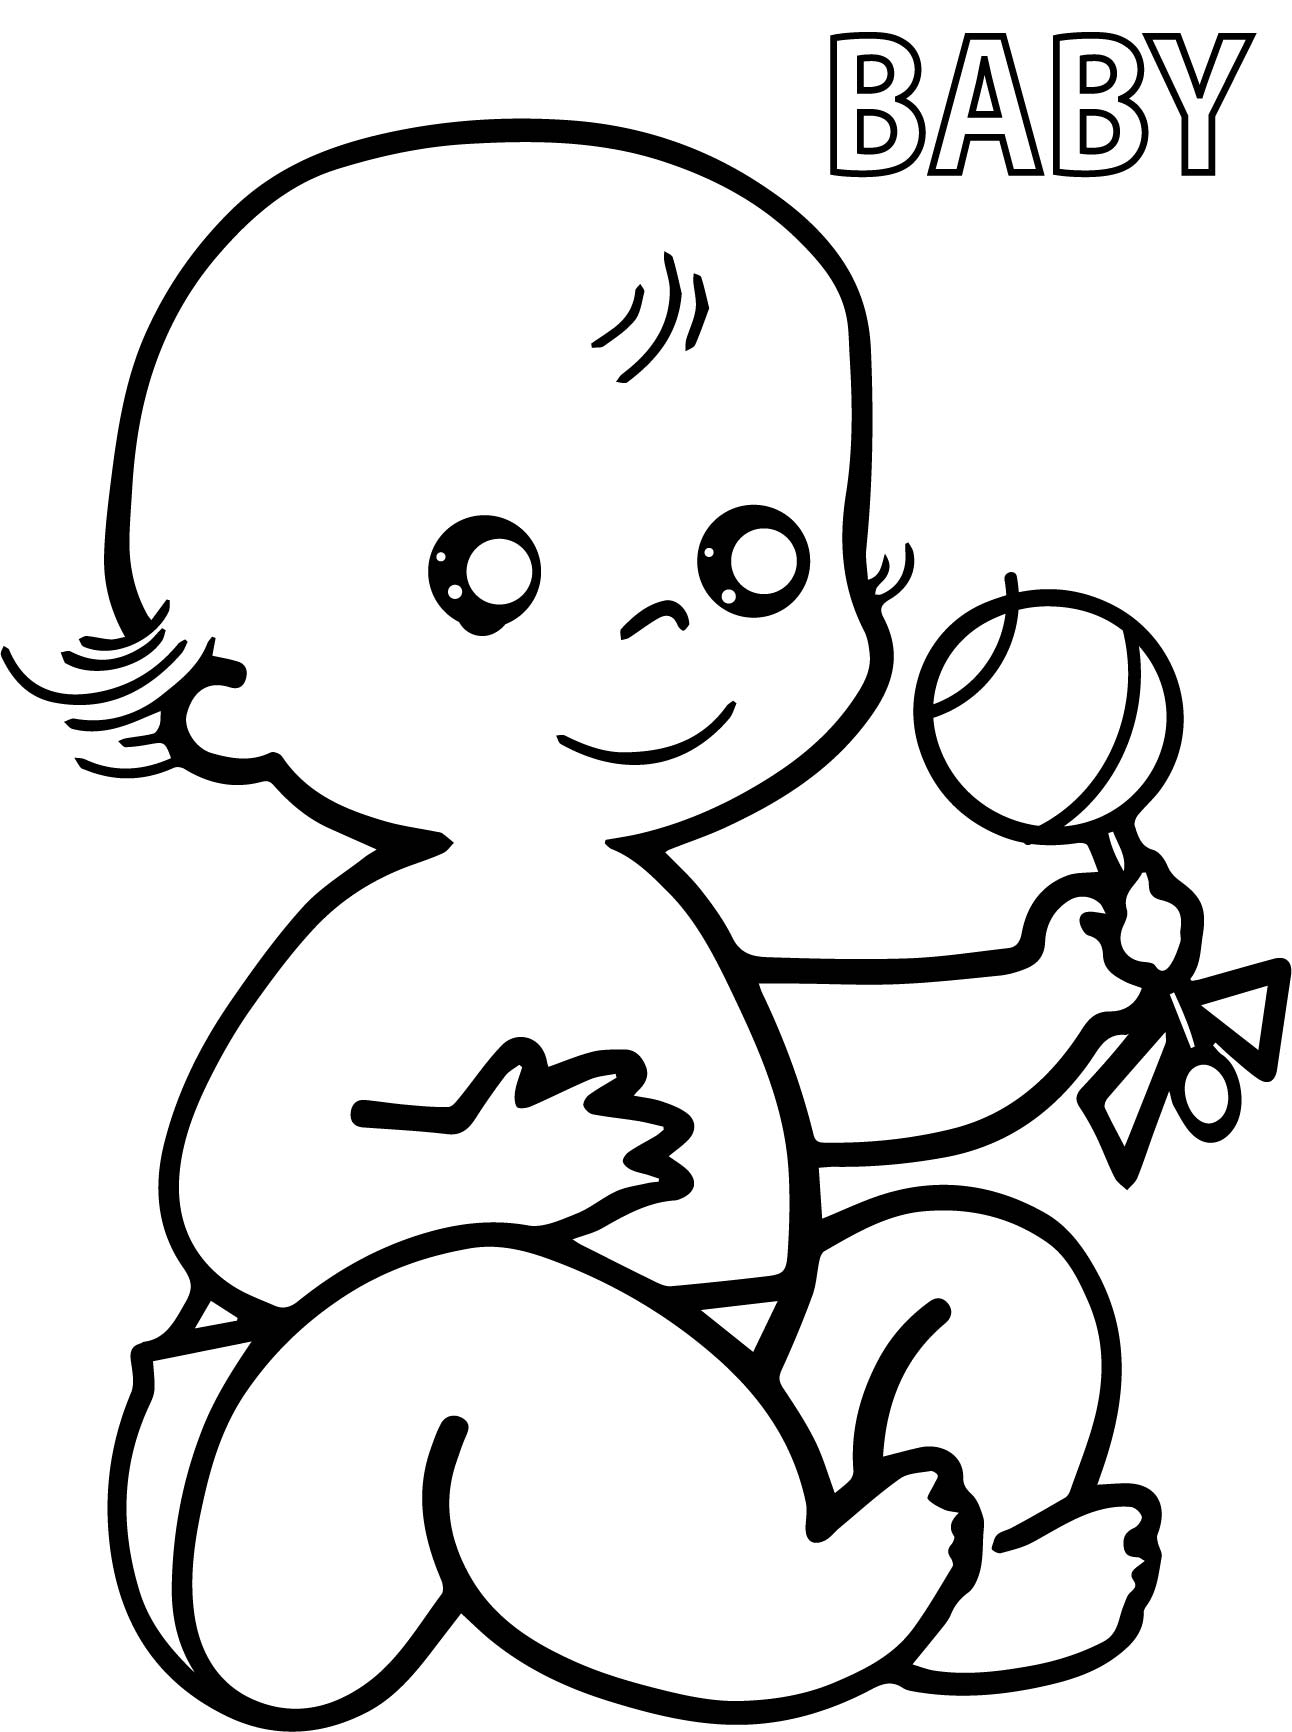 1292x1732 Free Printable Baby Coloring Pages For Toddler Kids Child To Print